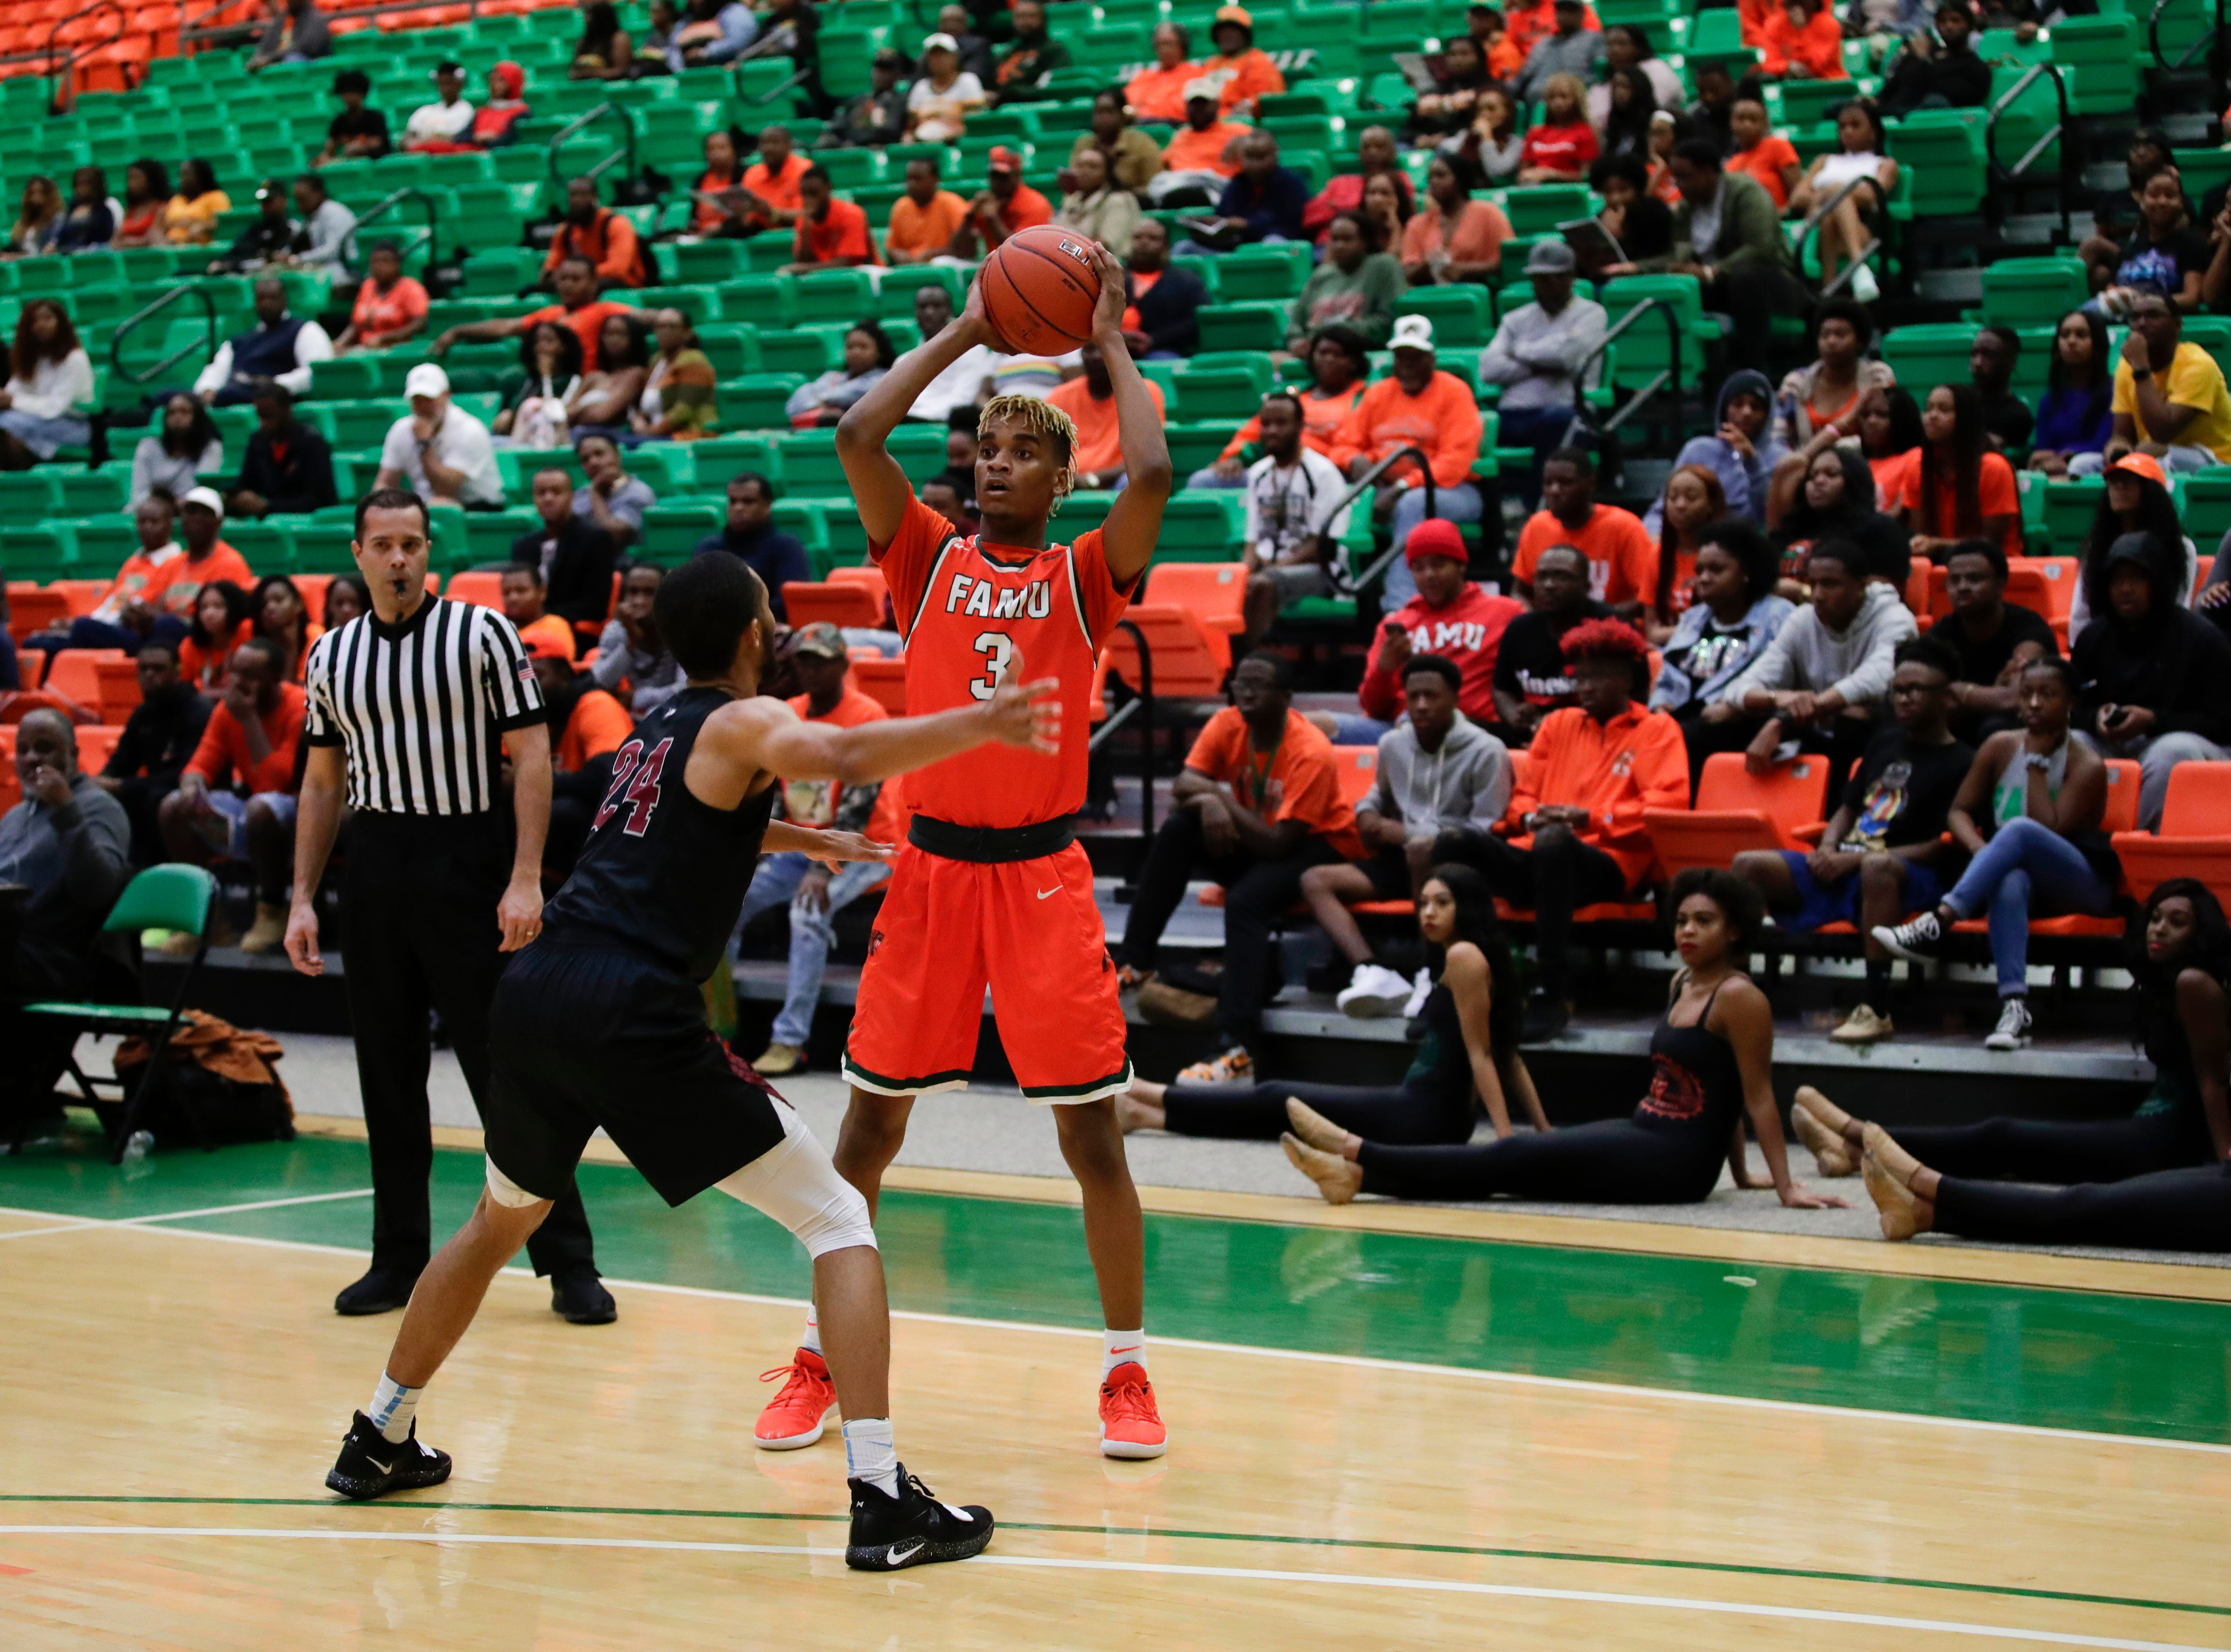 FAMU guard M.J. Randolph (3) looks for an open man during a game against North Carolina Central at the Alfred Lawson Jr. Multipurpose Center Monday, Feb. 4, 2019.